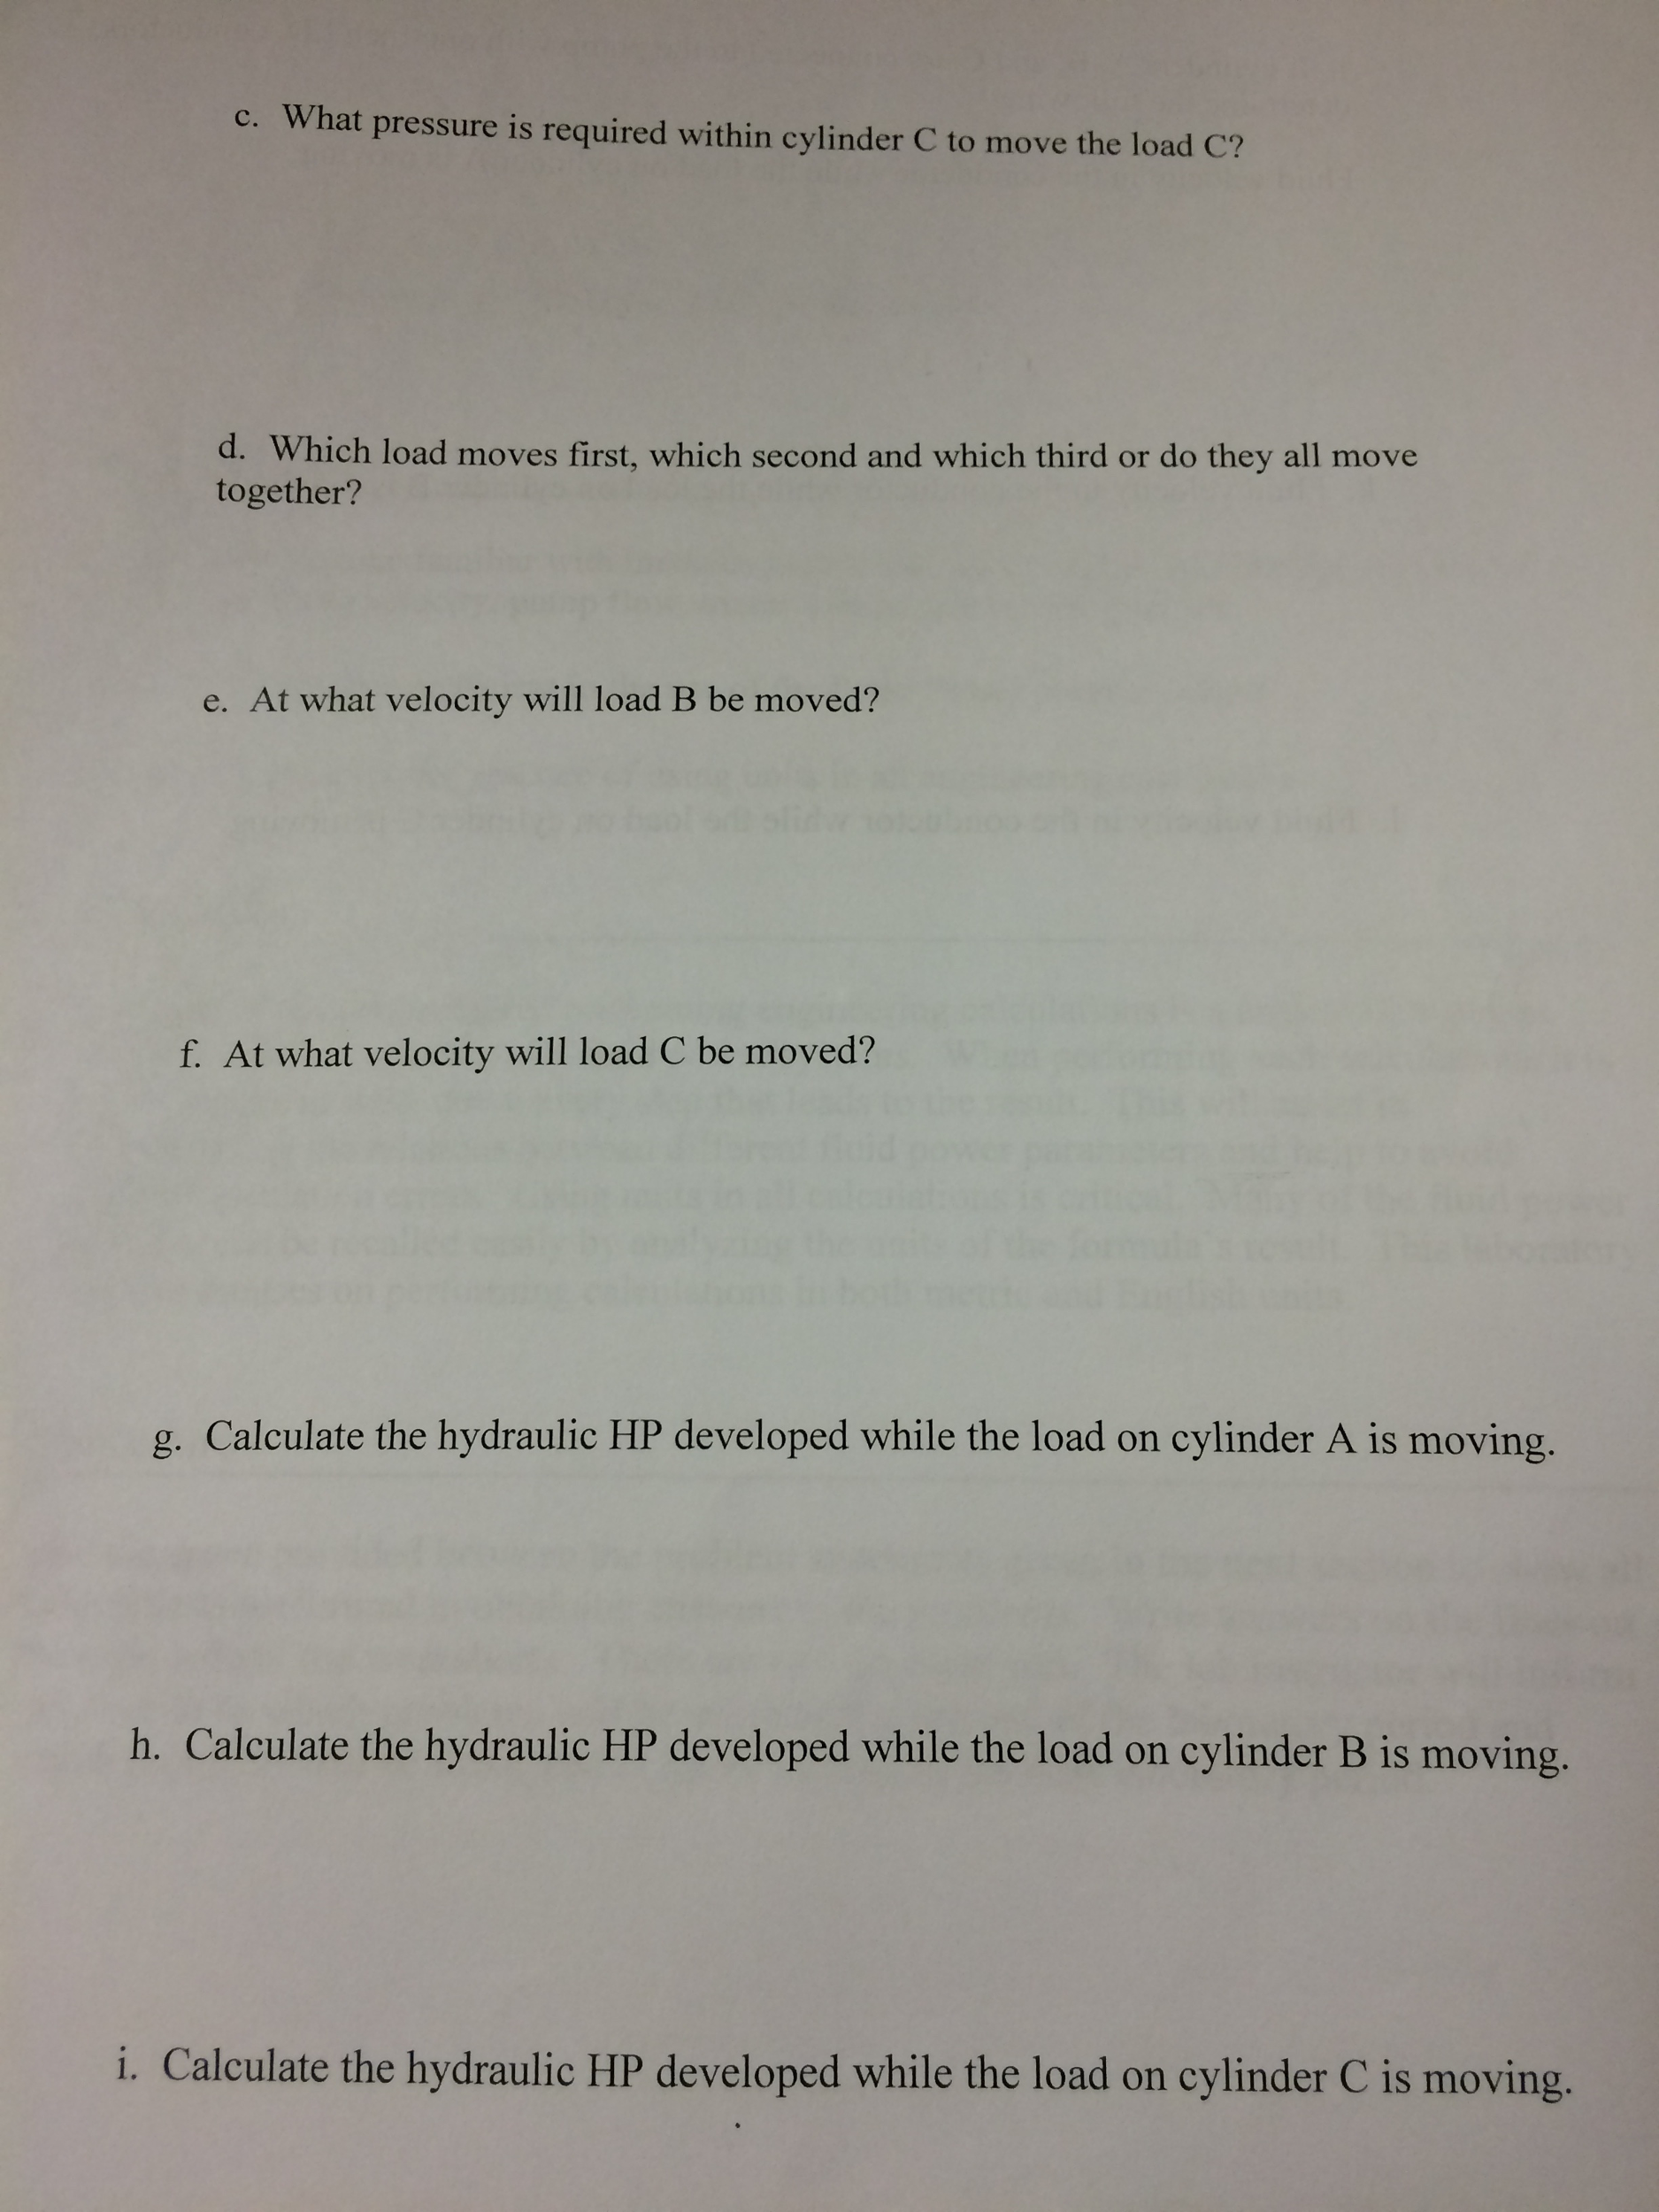 Please help me with this one question?